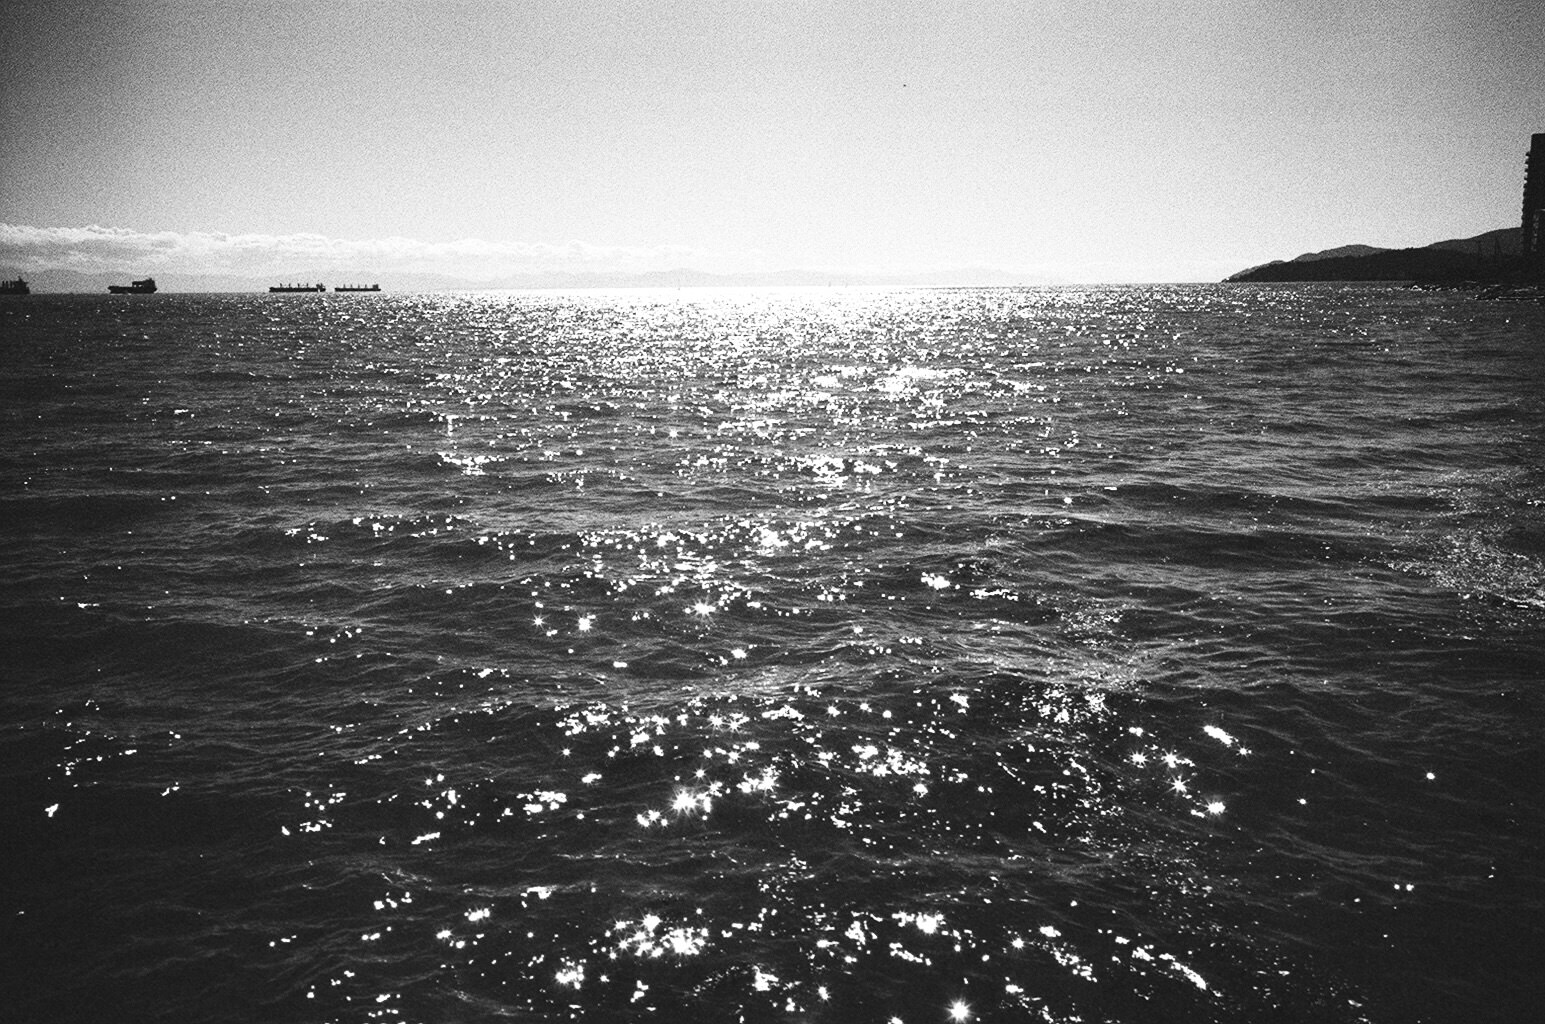 IMG_1428-173-trix1600-sea-water.jpg